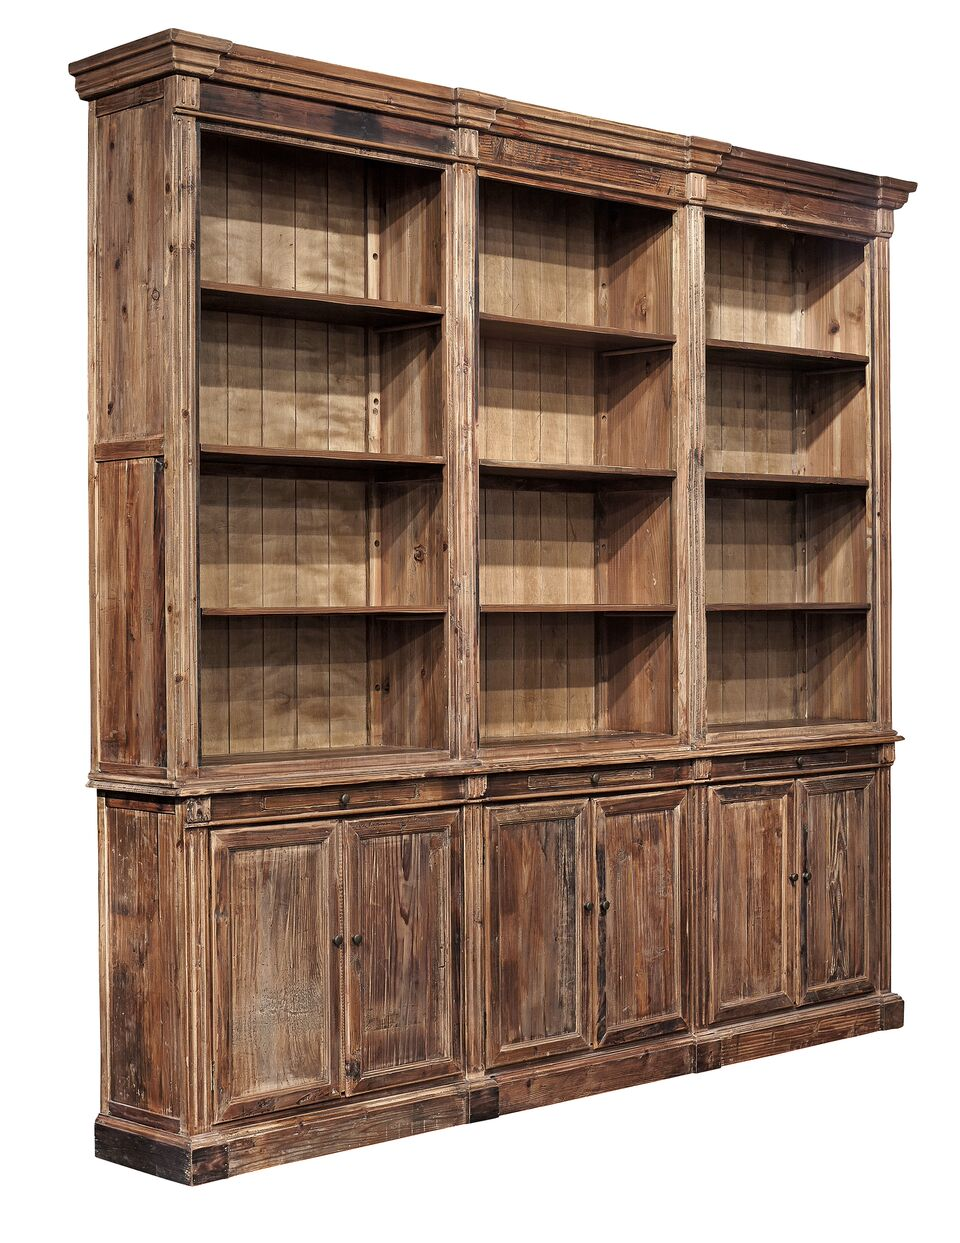 Furniture Classics Old Fir Grand Bookcase 72074 - Curios And More